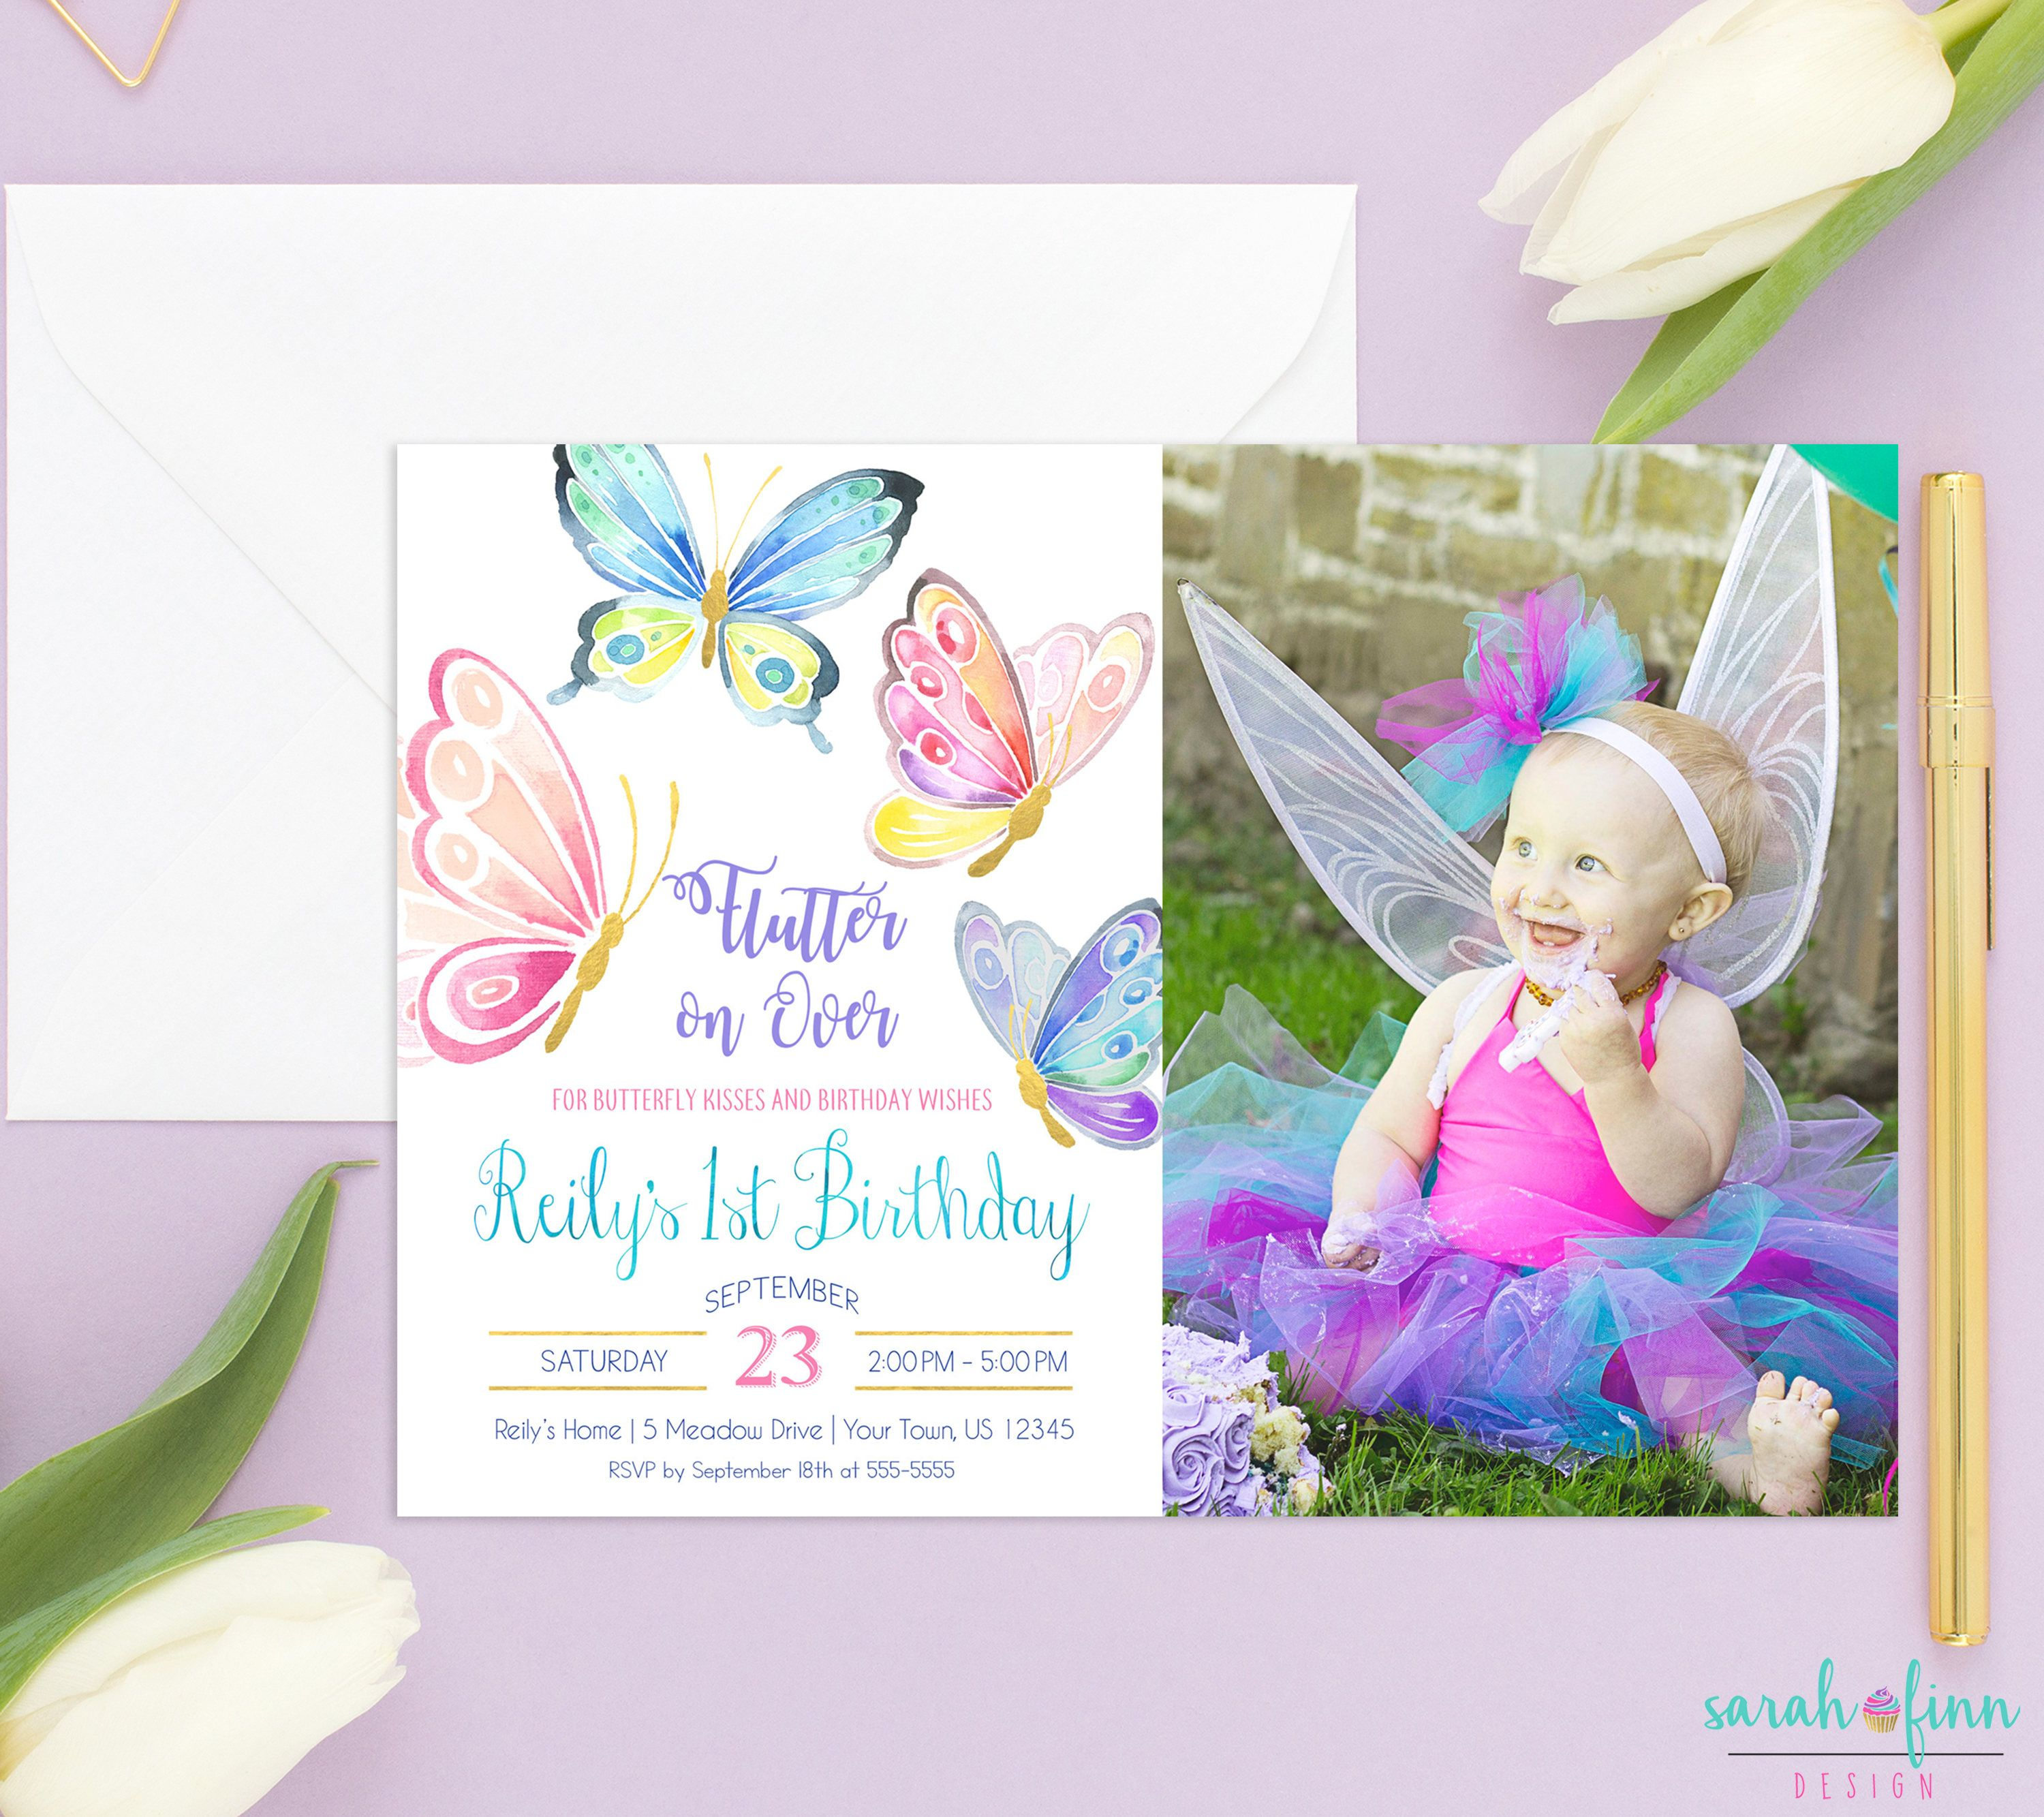 1st birthday butterfly photo invitations ; 8bbae47a0bde8793c1f0d81a14be06a8